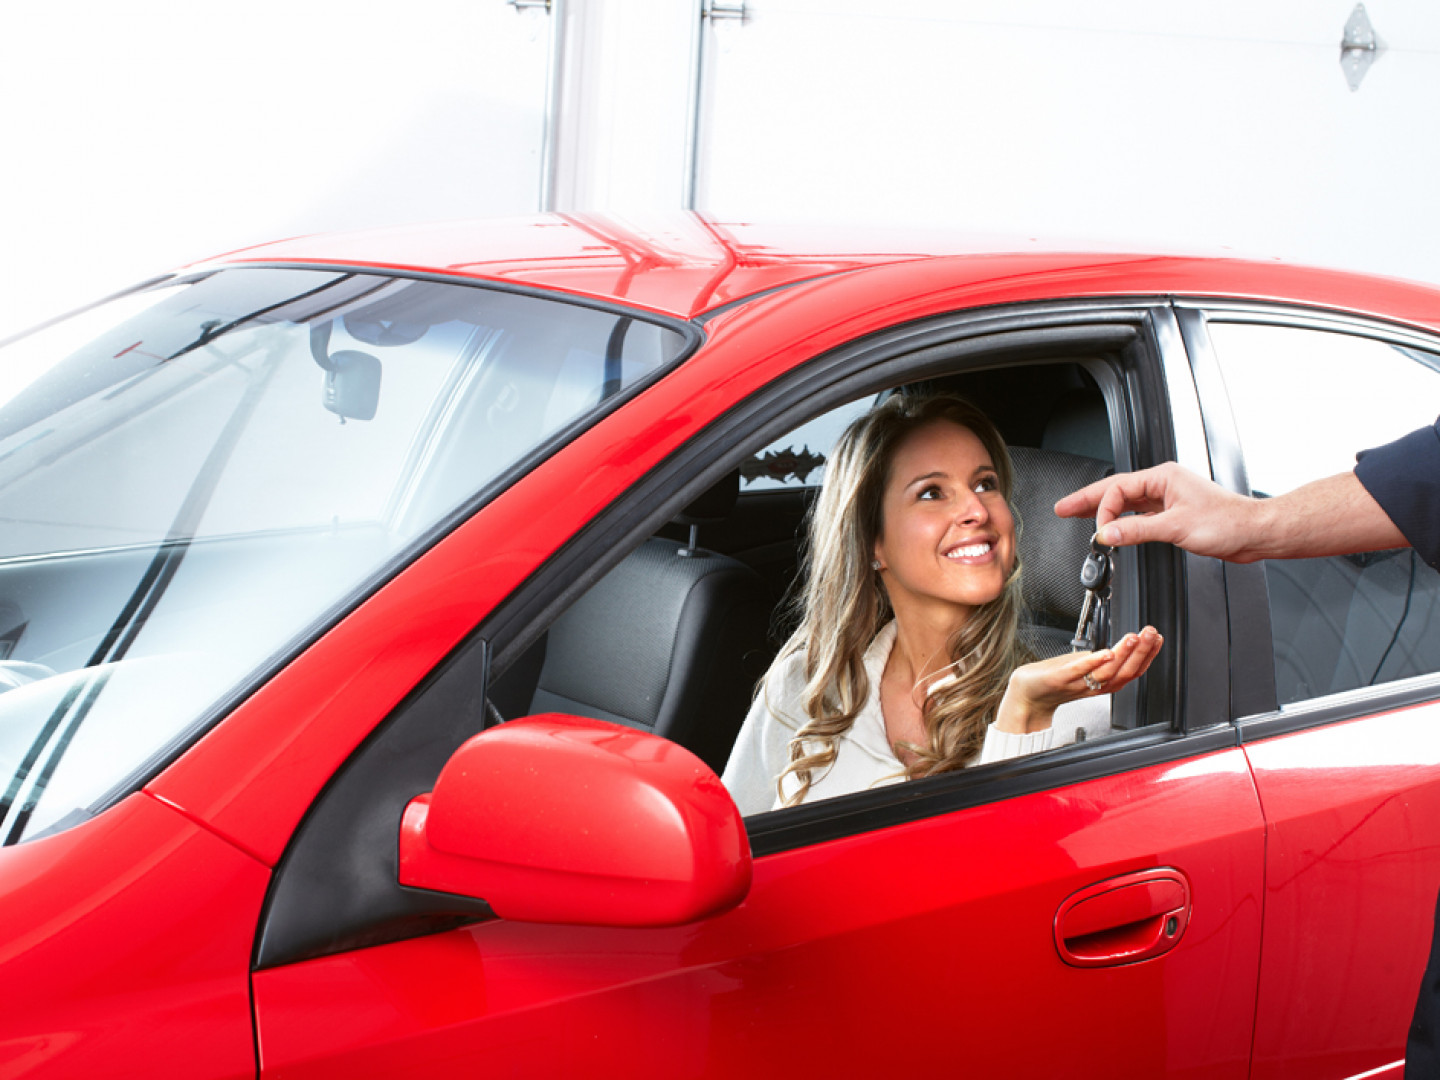 Get the Facts Before Your Next Car Purchase